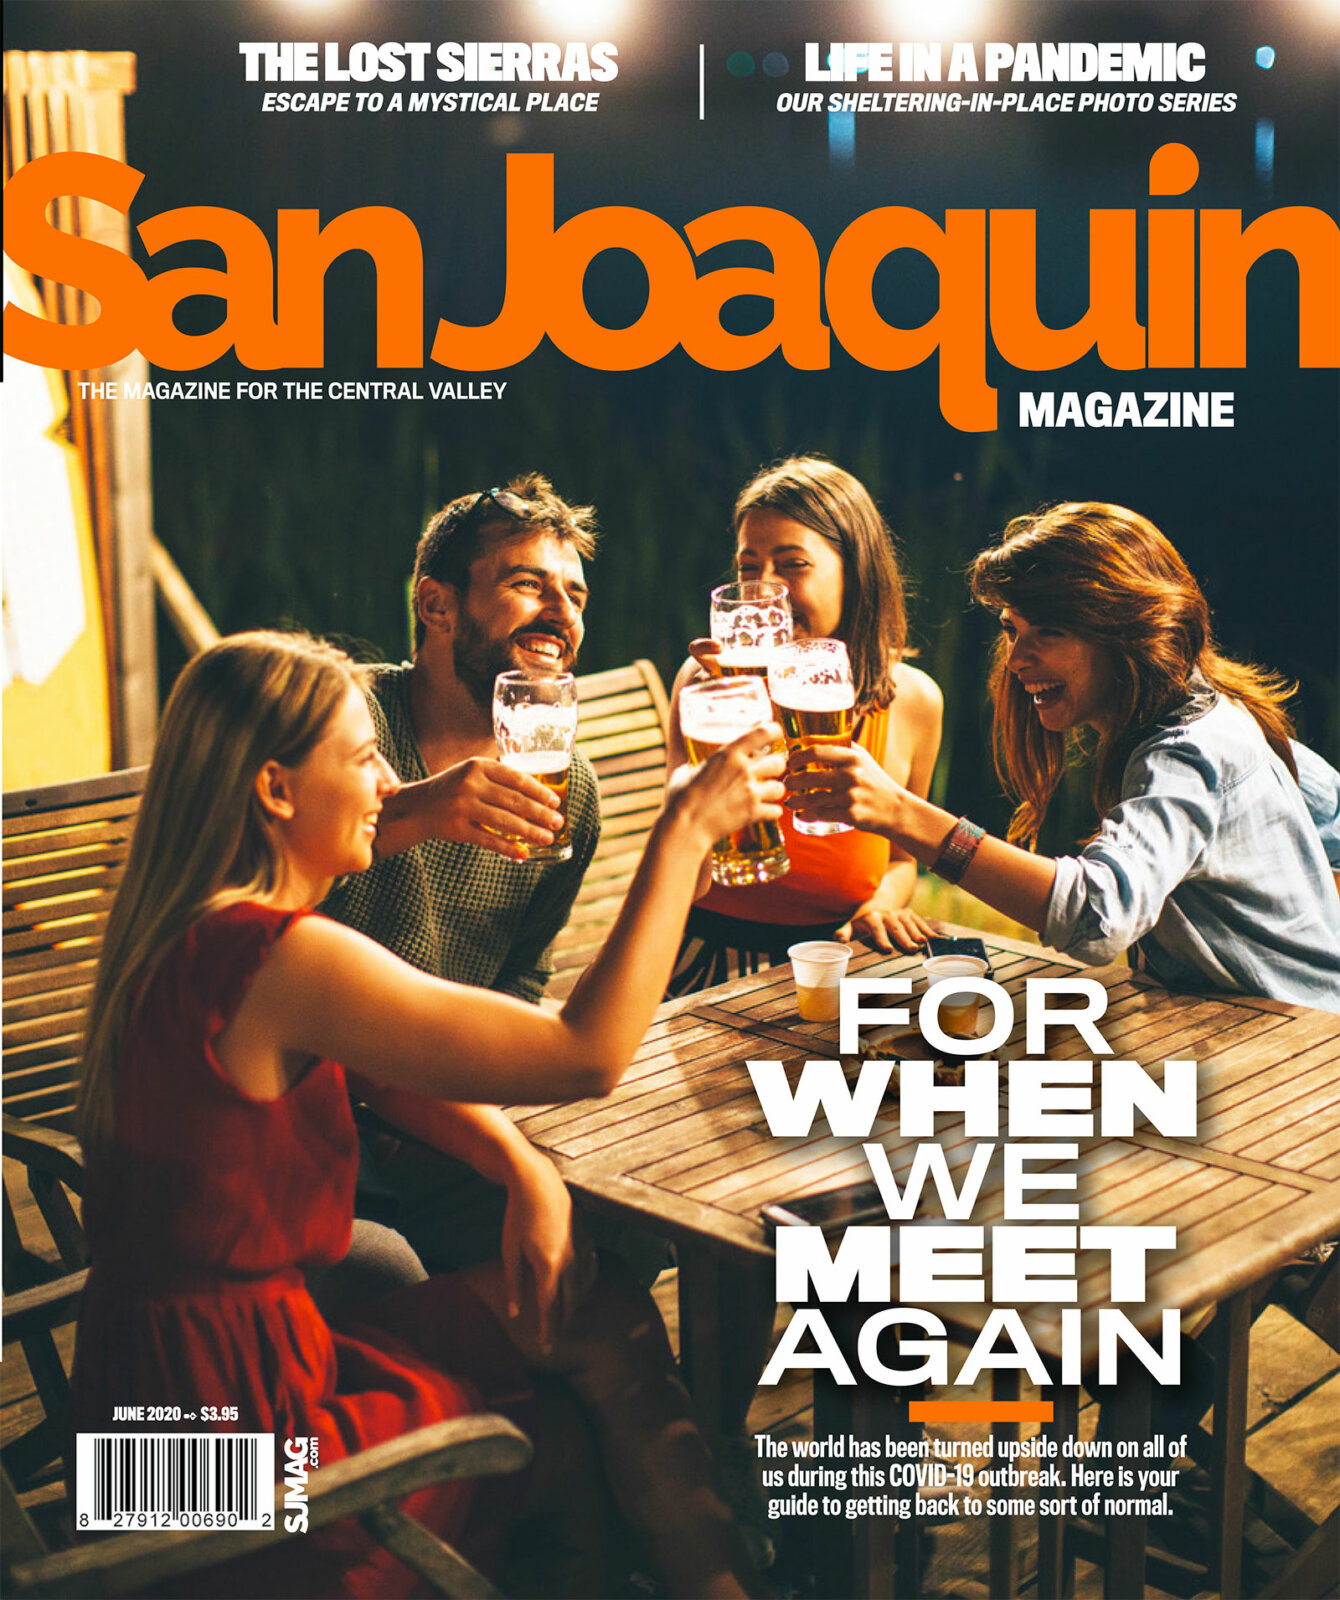 San Joaquin Magazine June 2020